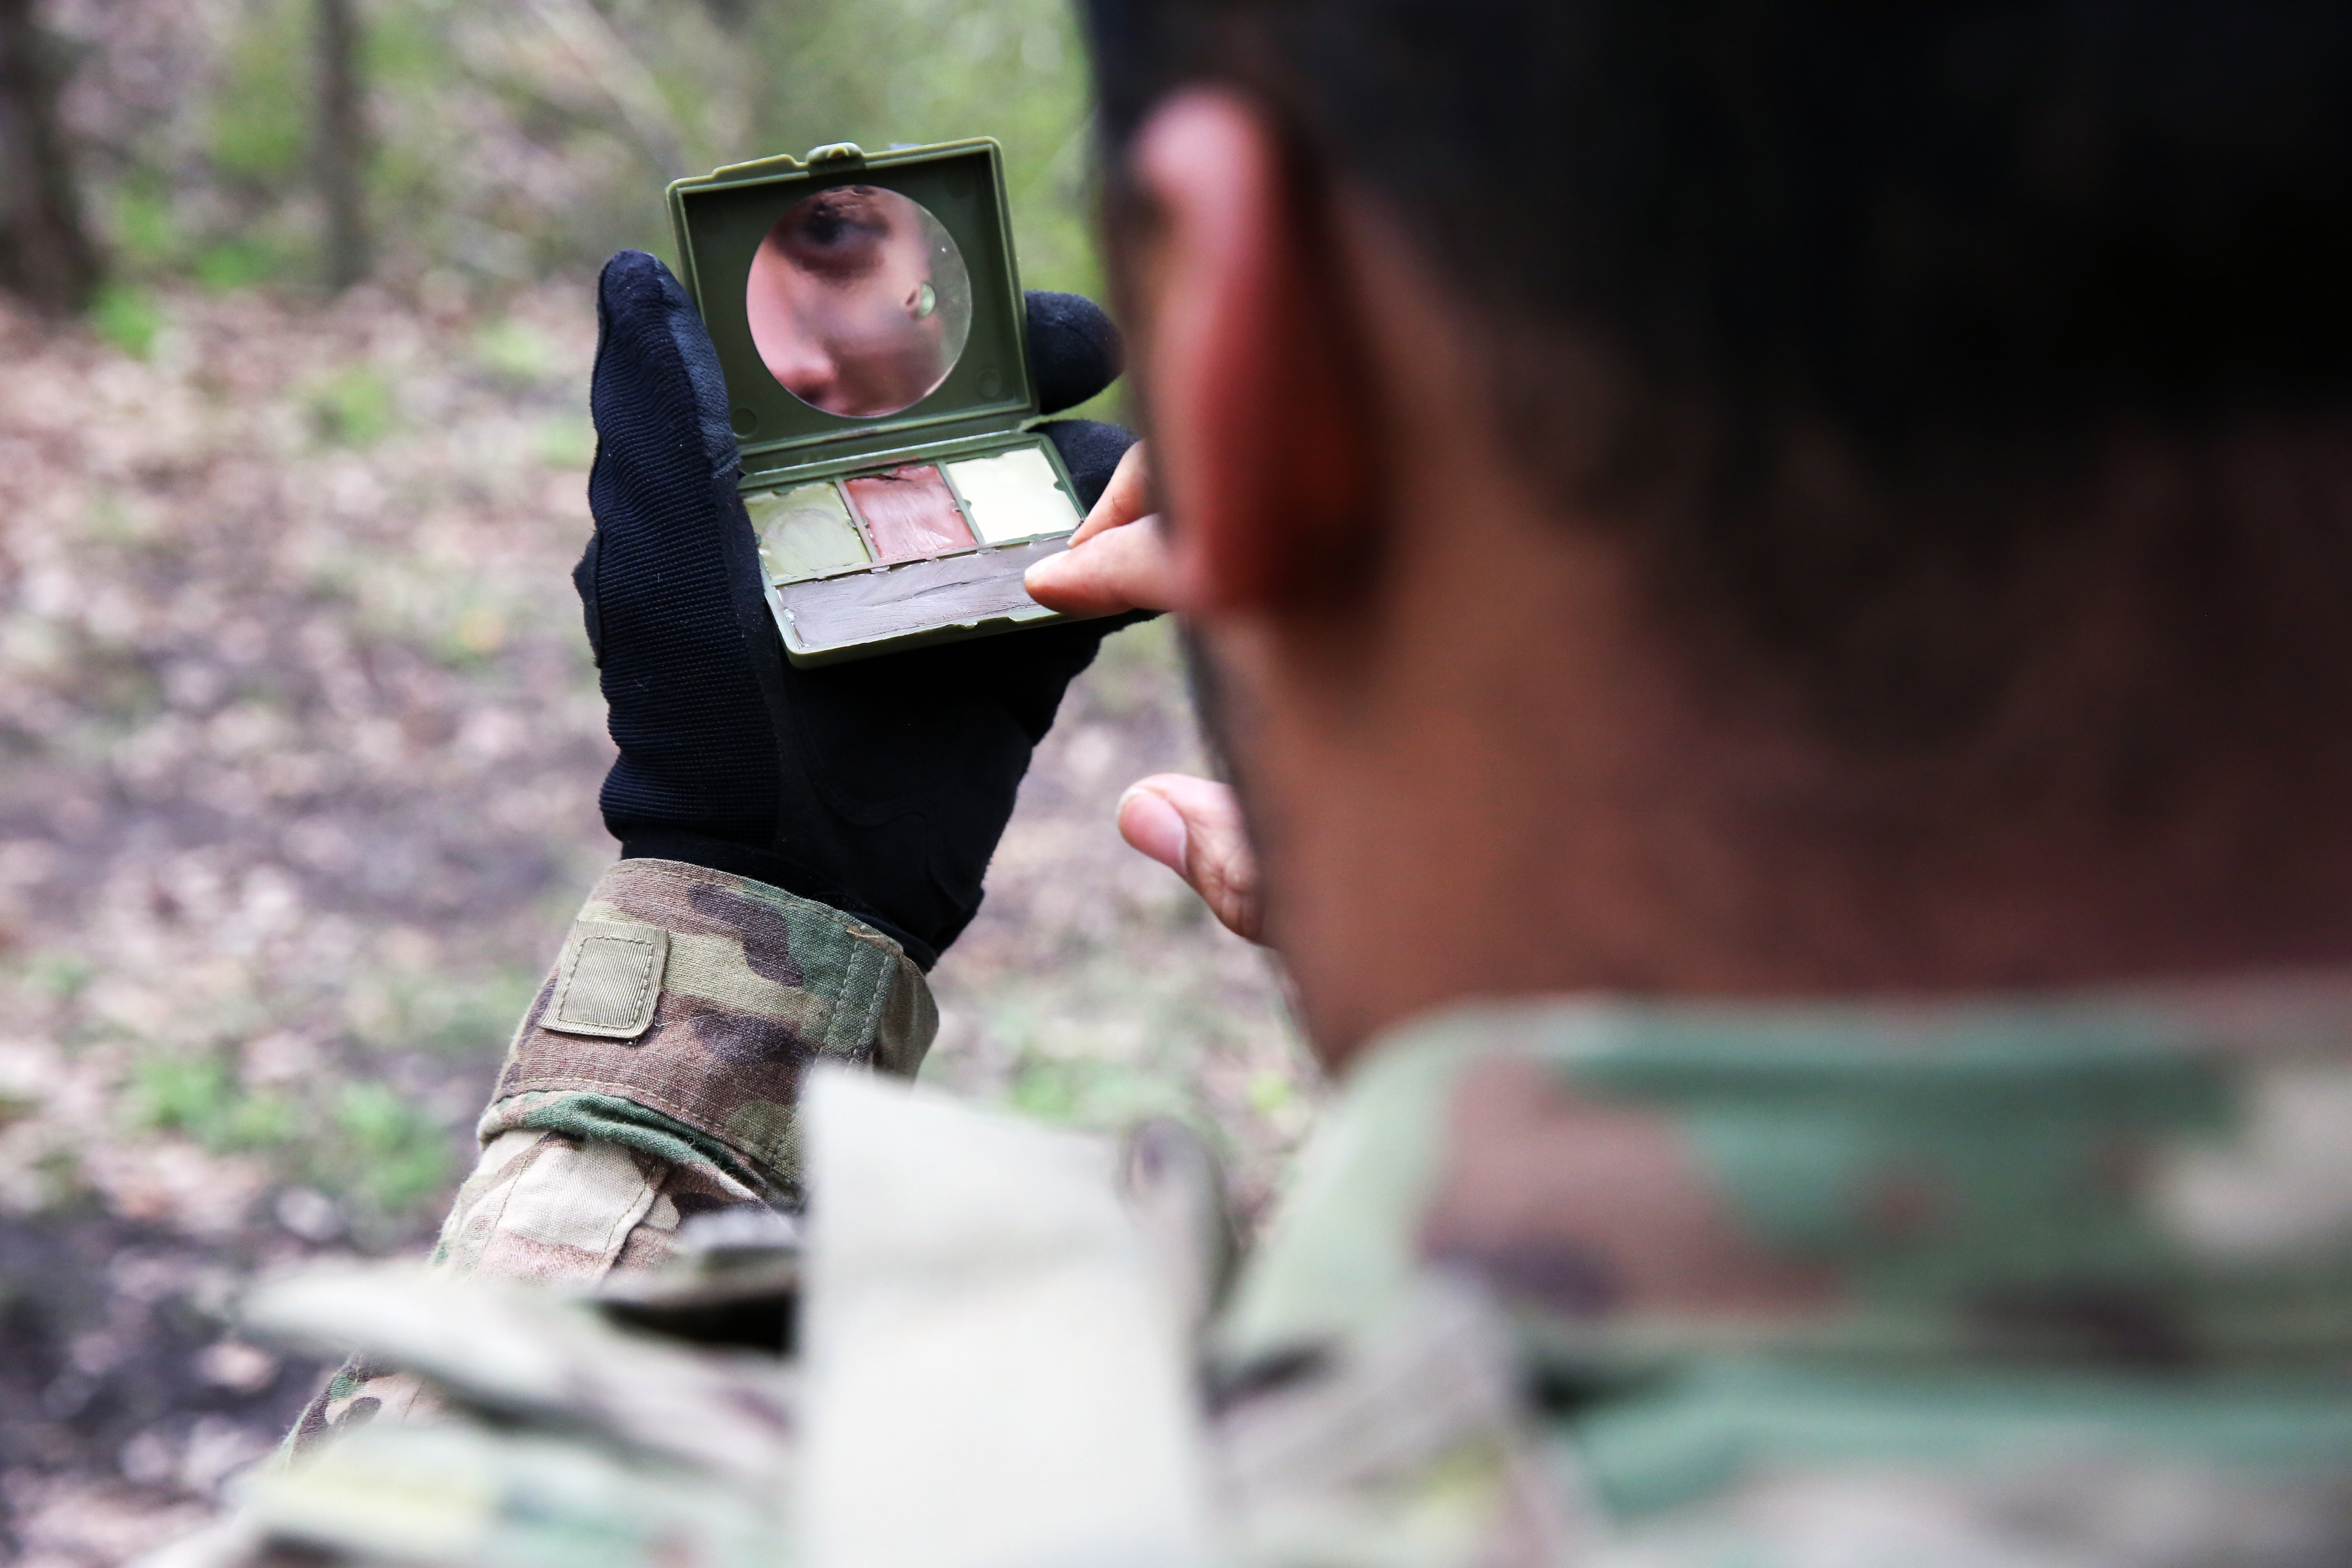 U.S. Army Spc. Christian Summers, assigned to Bravo Company, 44th Expeditionary Signal Battalion, 2nd Theater Signal Brigade, looks in the mirror as he applies comouflage paint during exercise Stoney Run, April 24, 2018 in the Sennelager Training Area, Germany. Stoney Run is an annual U.S.-U.K. signal exercise designed to test and validate communications and network capabilities, and enhance interoperability and partner capacity between the two NATO allies. (U.S. Army photo by William B. King)